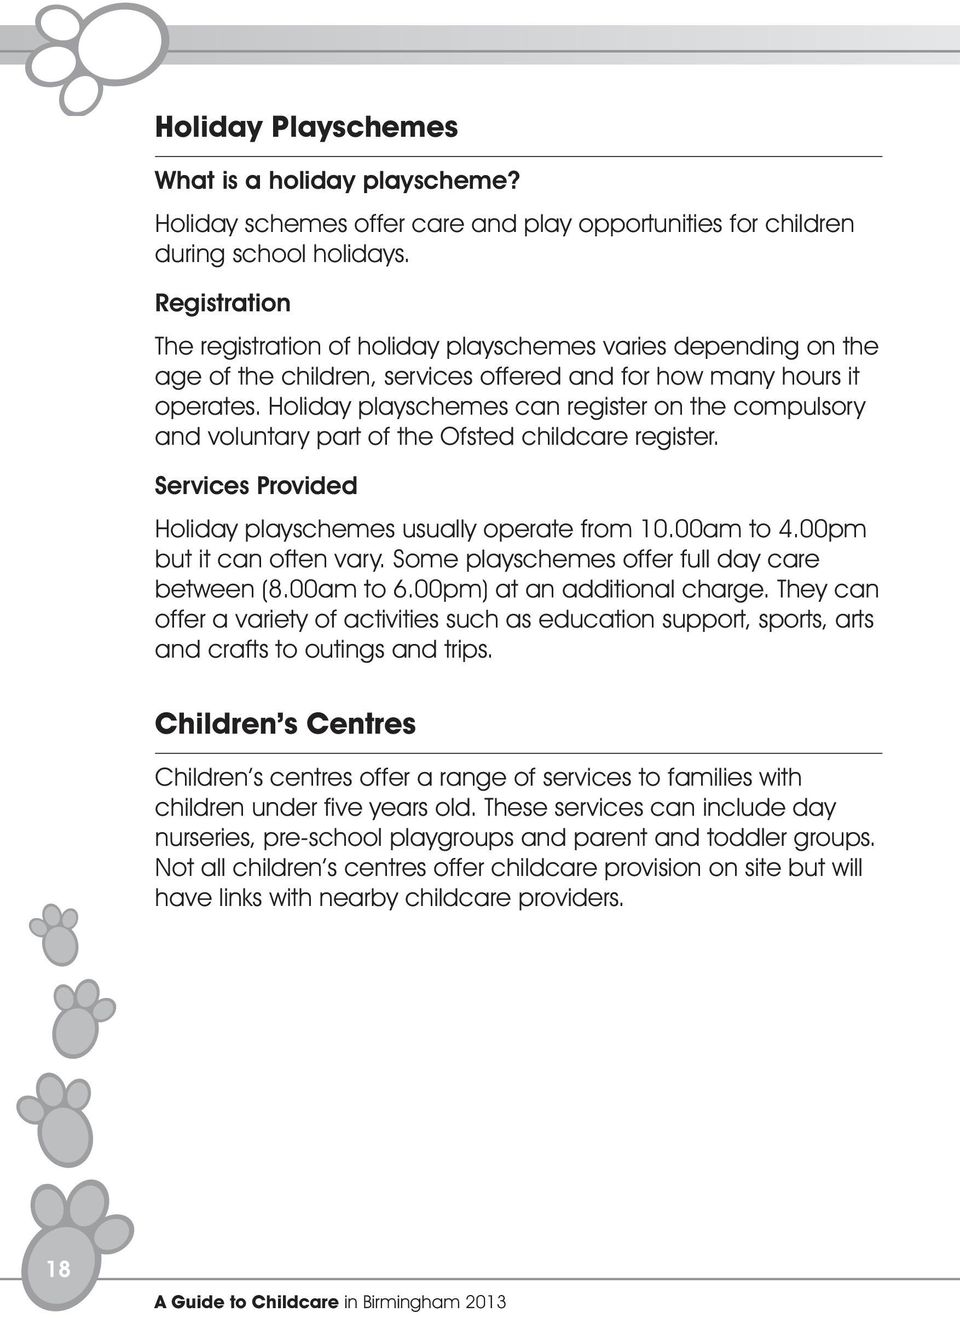 Holiday playschemes can register on the compulsory and voluntary part of the Ofsted childcare register. Services Provided Holiday playschemes usually operate from 10.00am to 4.